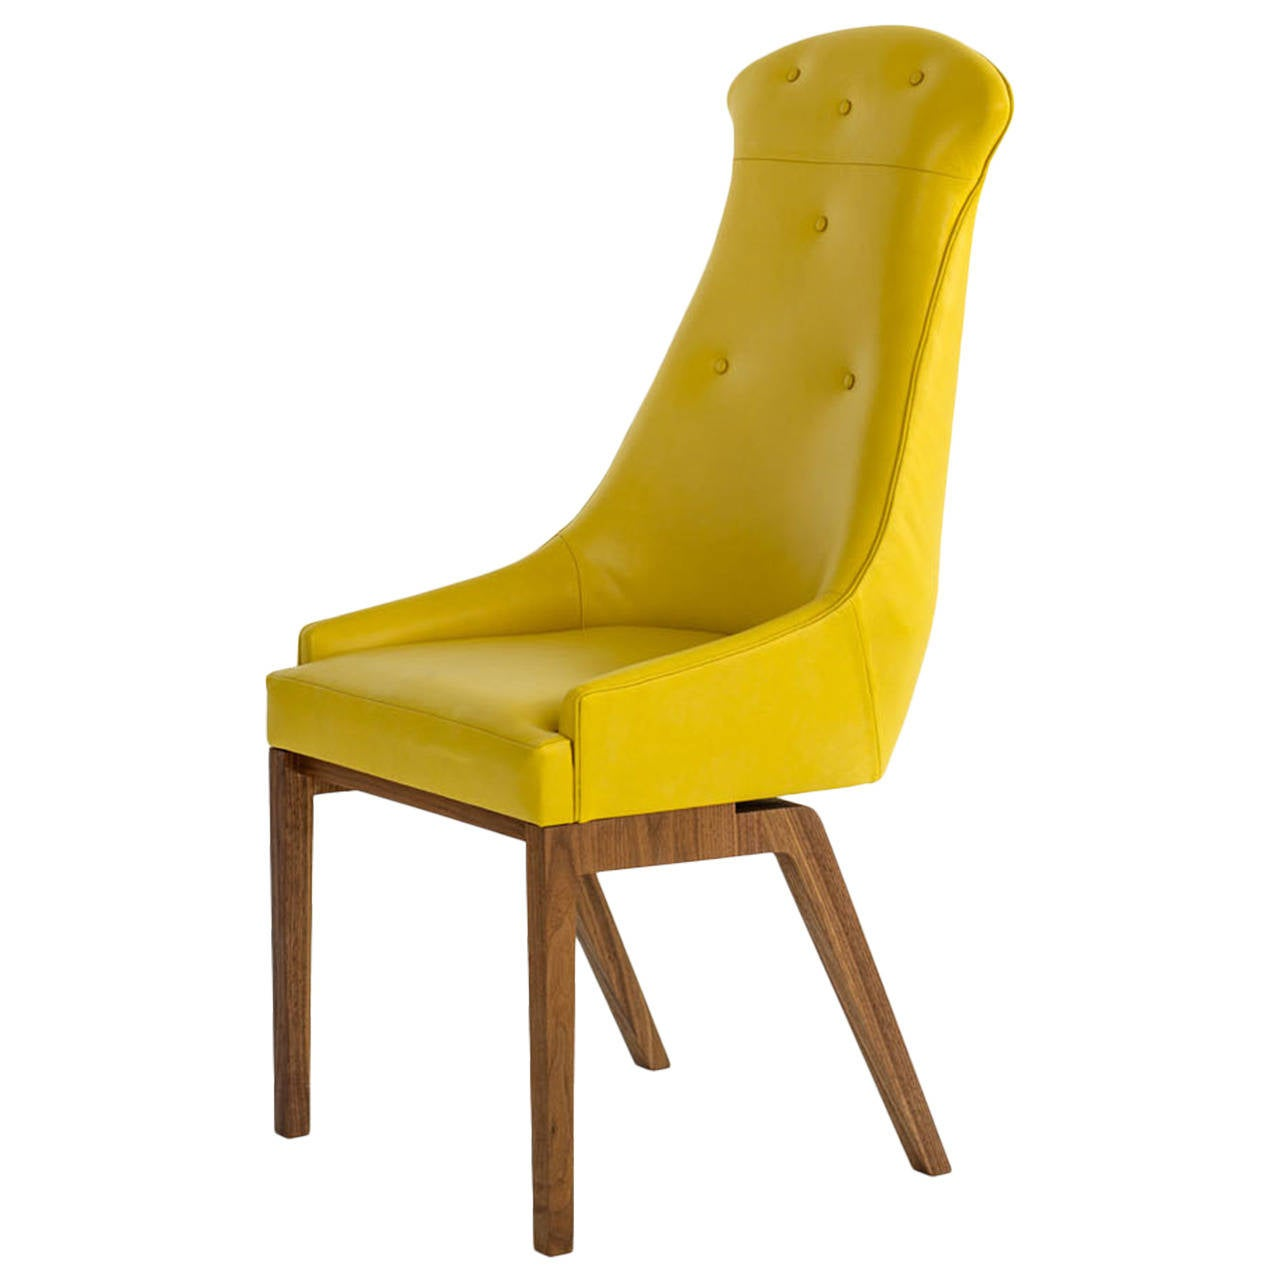 evander dining chair in yellow wool bouclé or leather with solid  - evander dining chair in yellow wool bouclé or leather with solid walnutbase